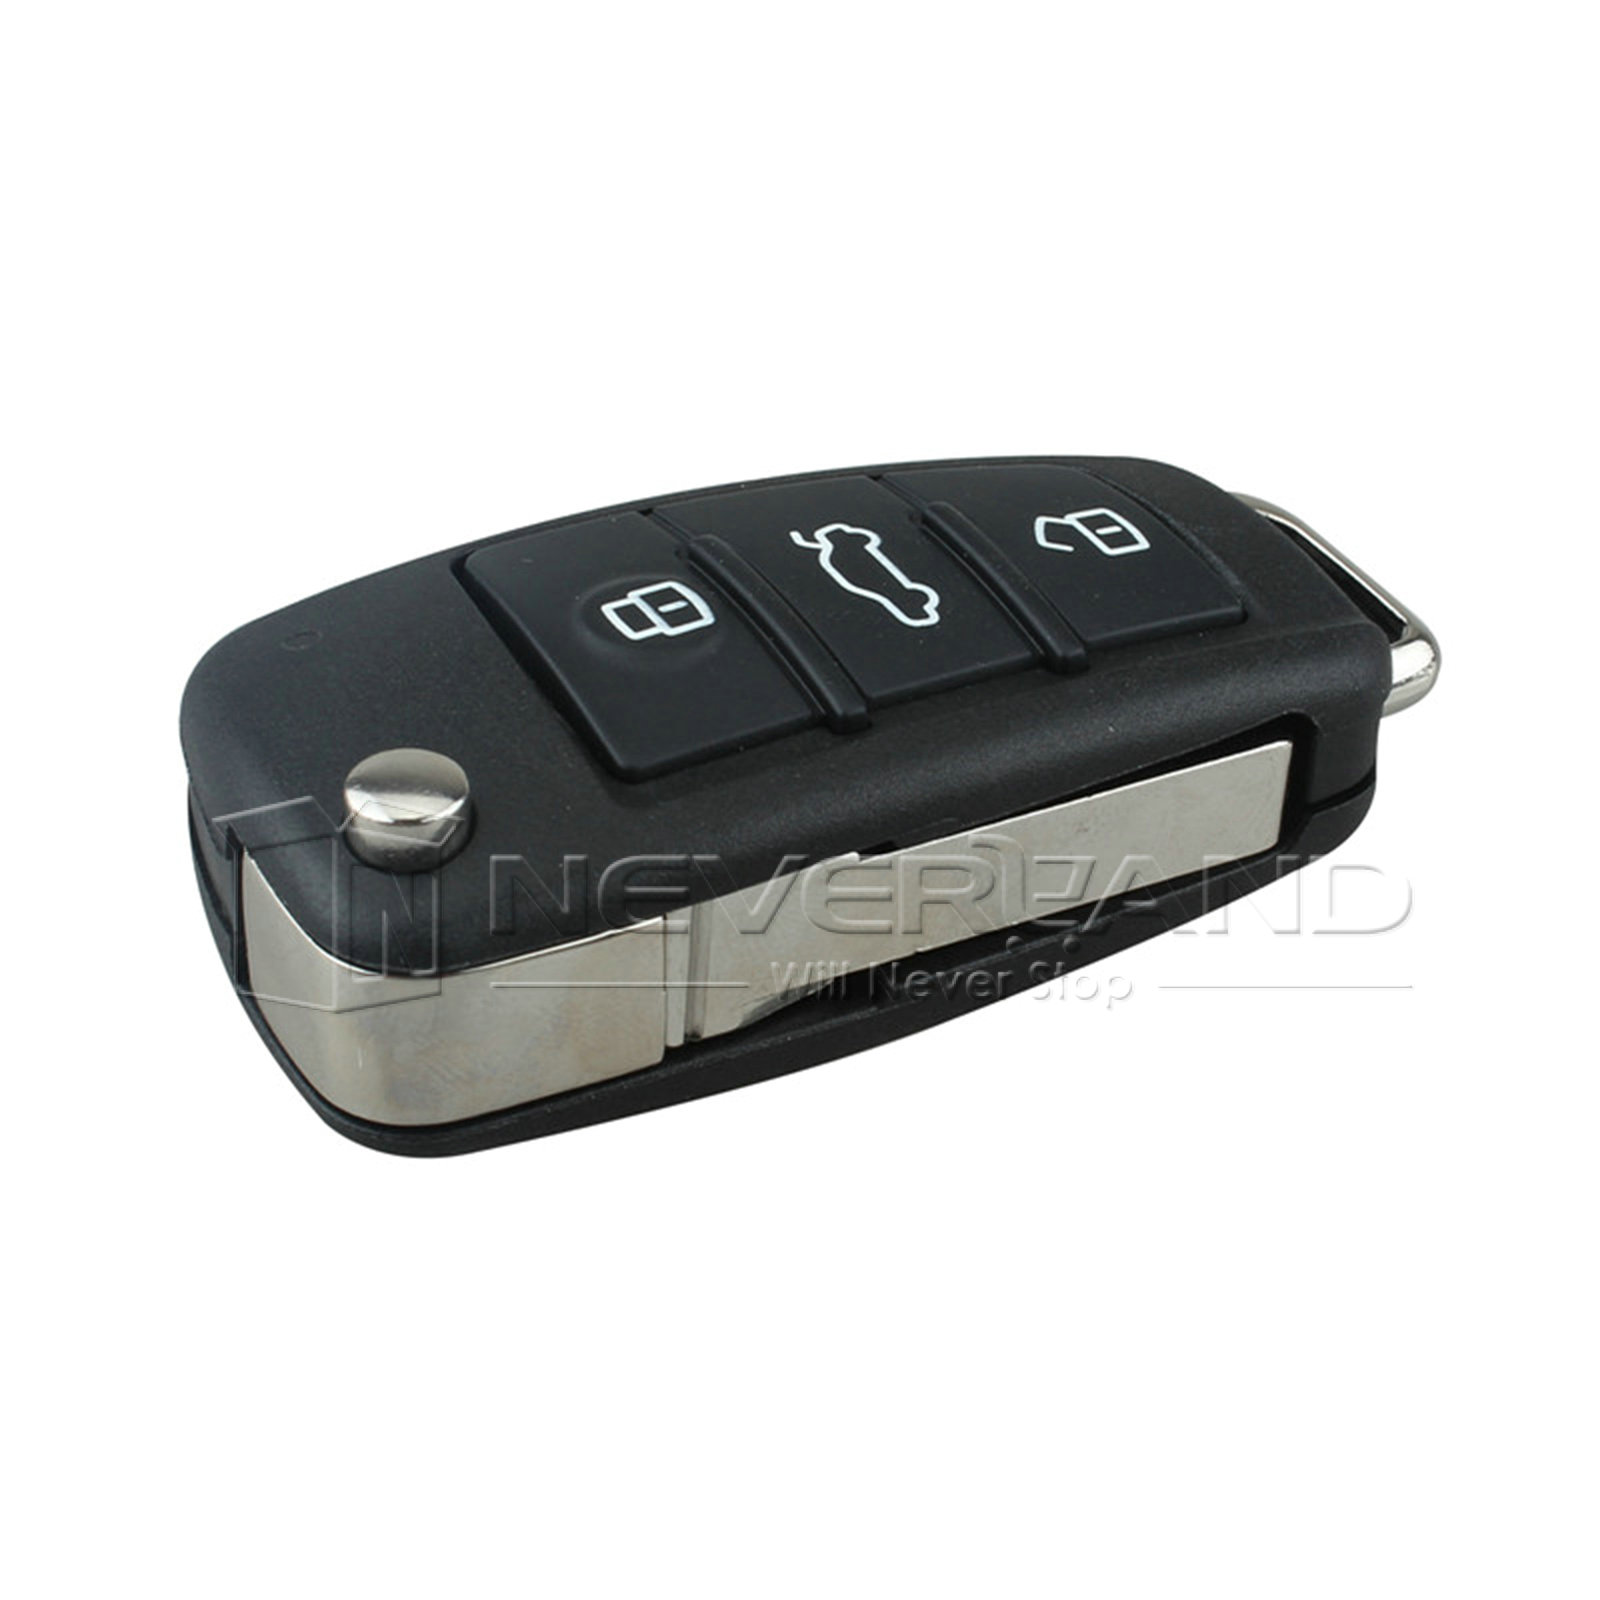 4 Button Remote Key Shell Replacement Flip Fob For Audi A6